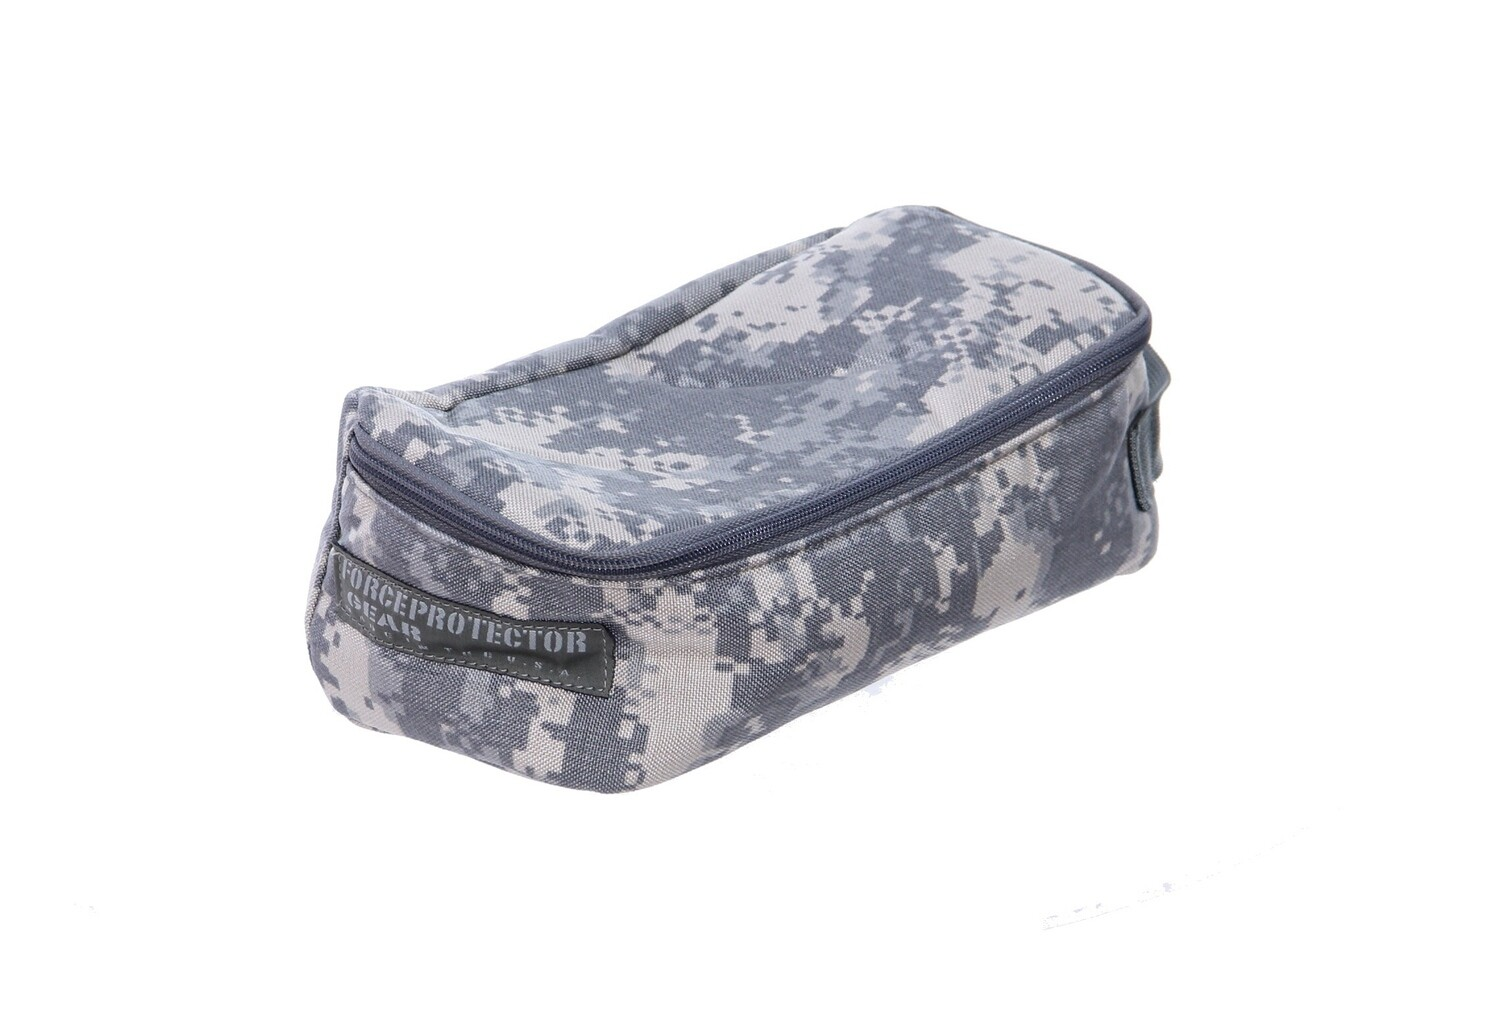 Loadout Divider Bag (LDB-1 Padded Pouch)